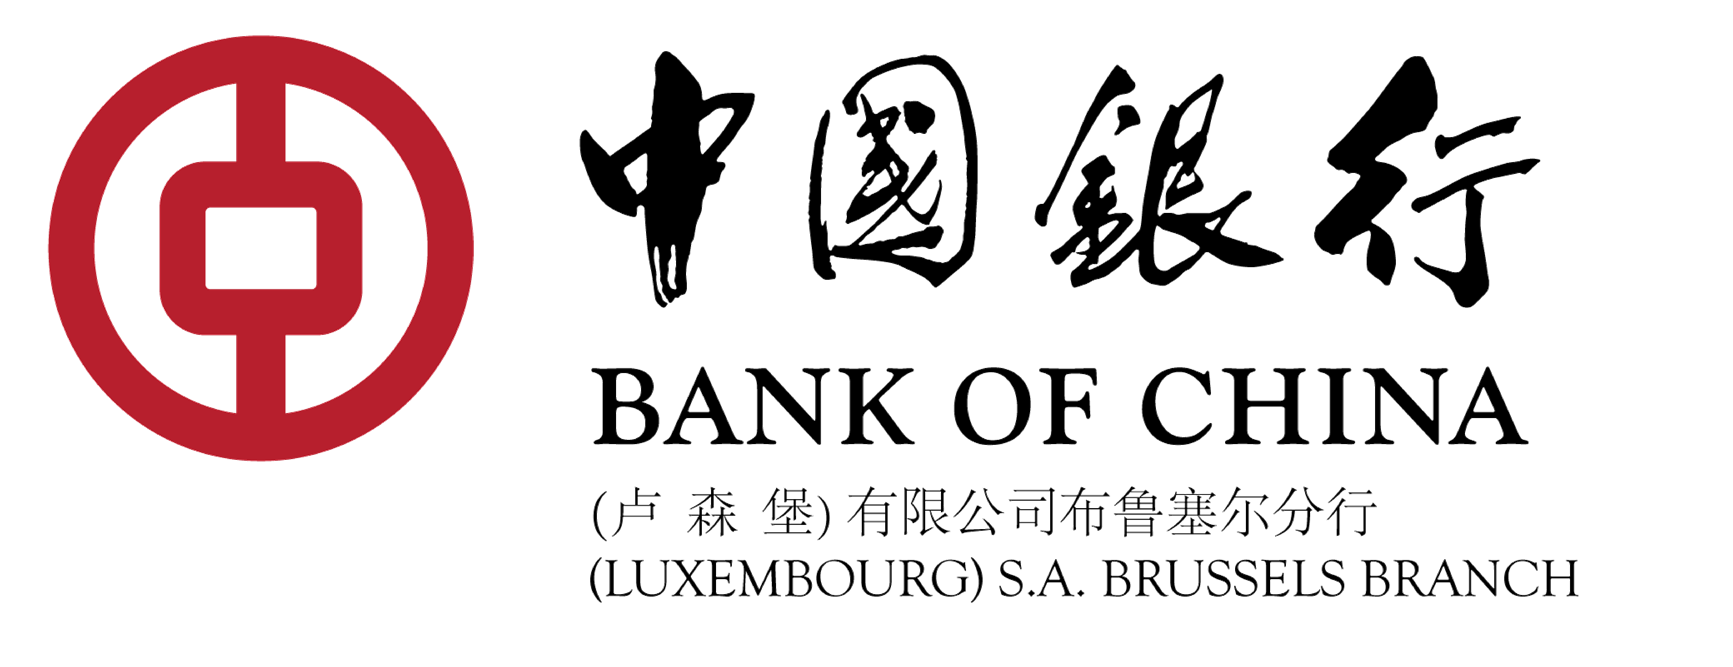 Bank of China - Brussels Branch